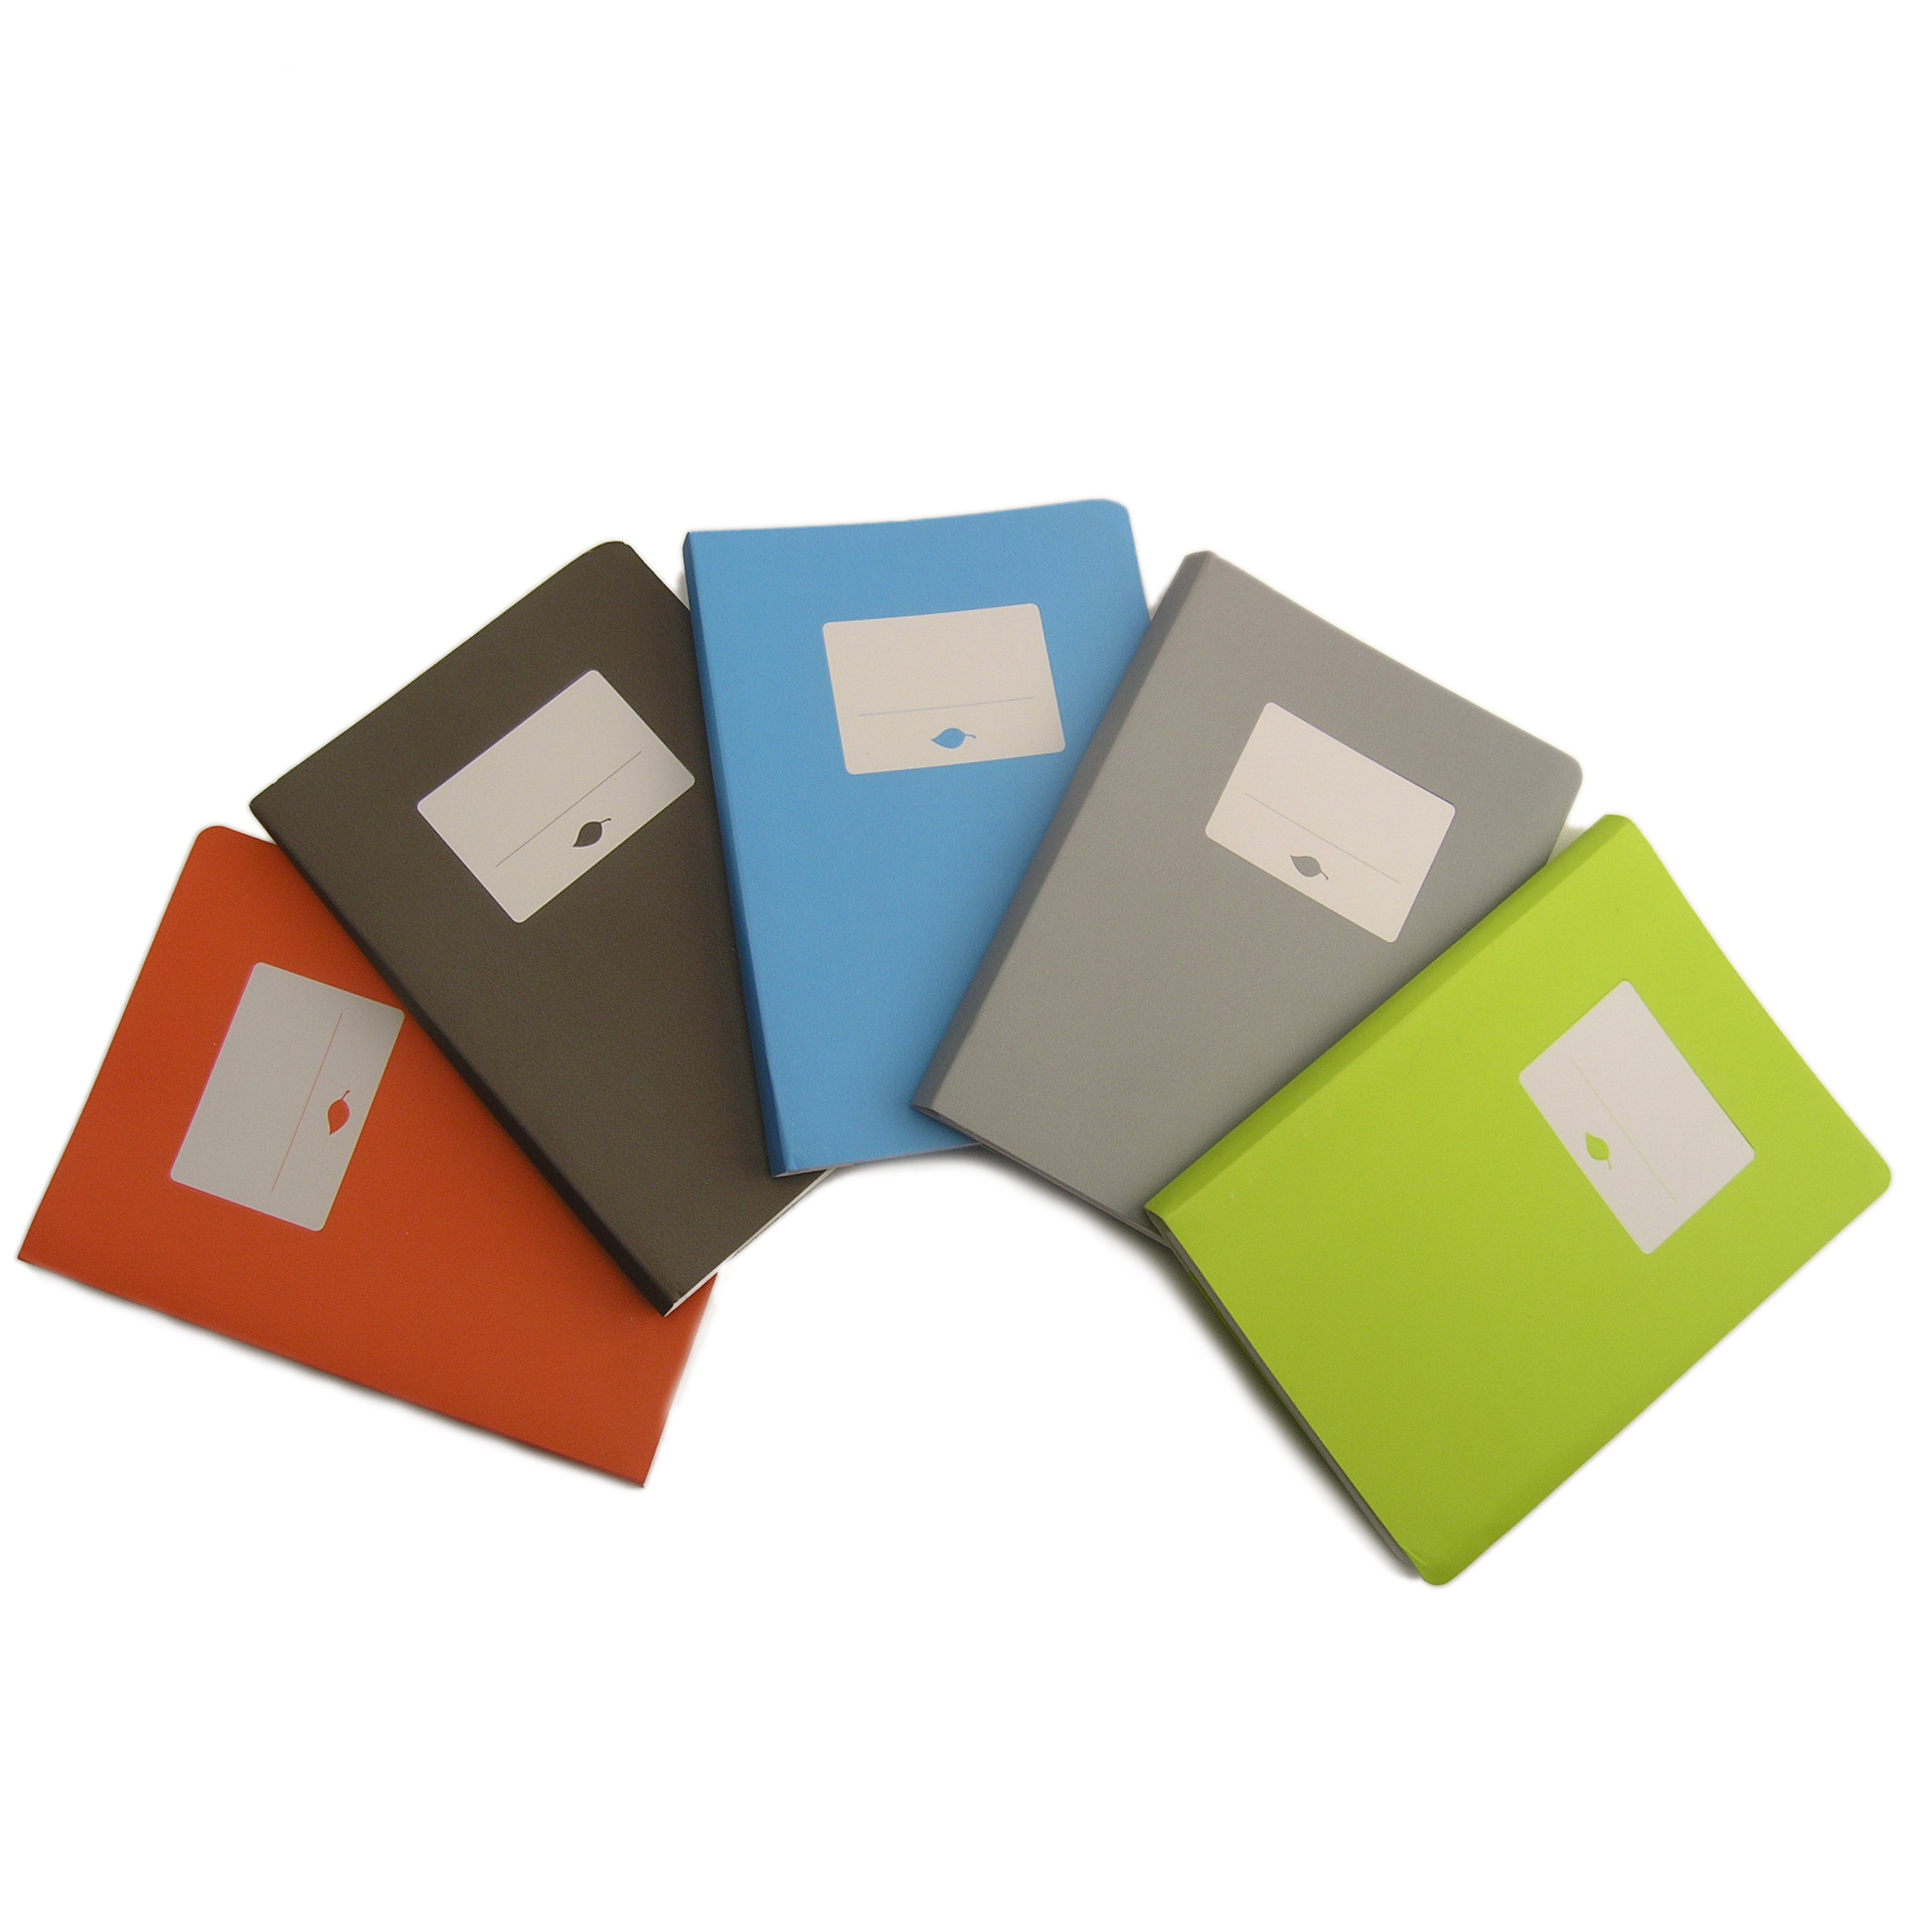 Terraskin notebooks